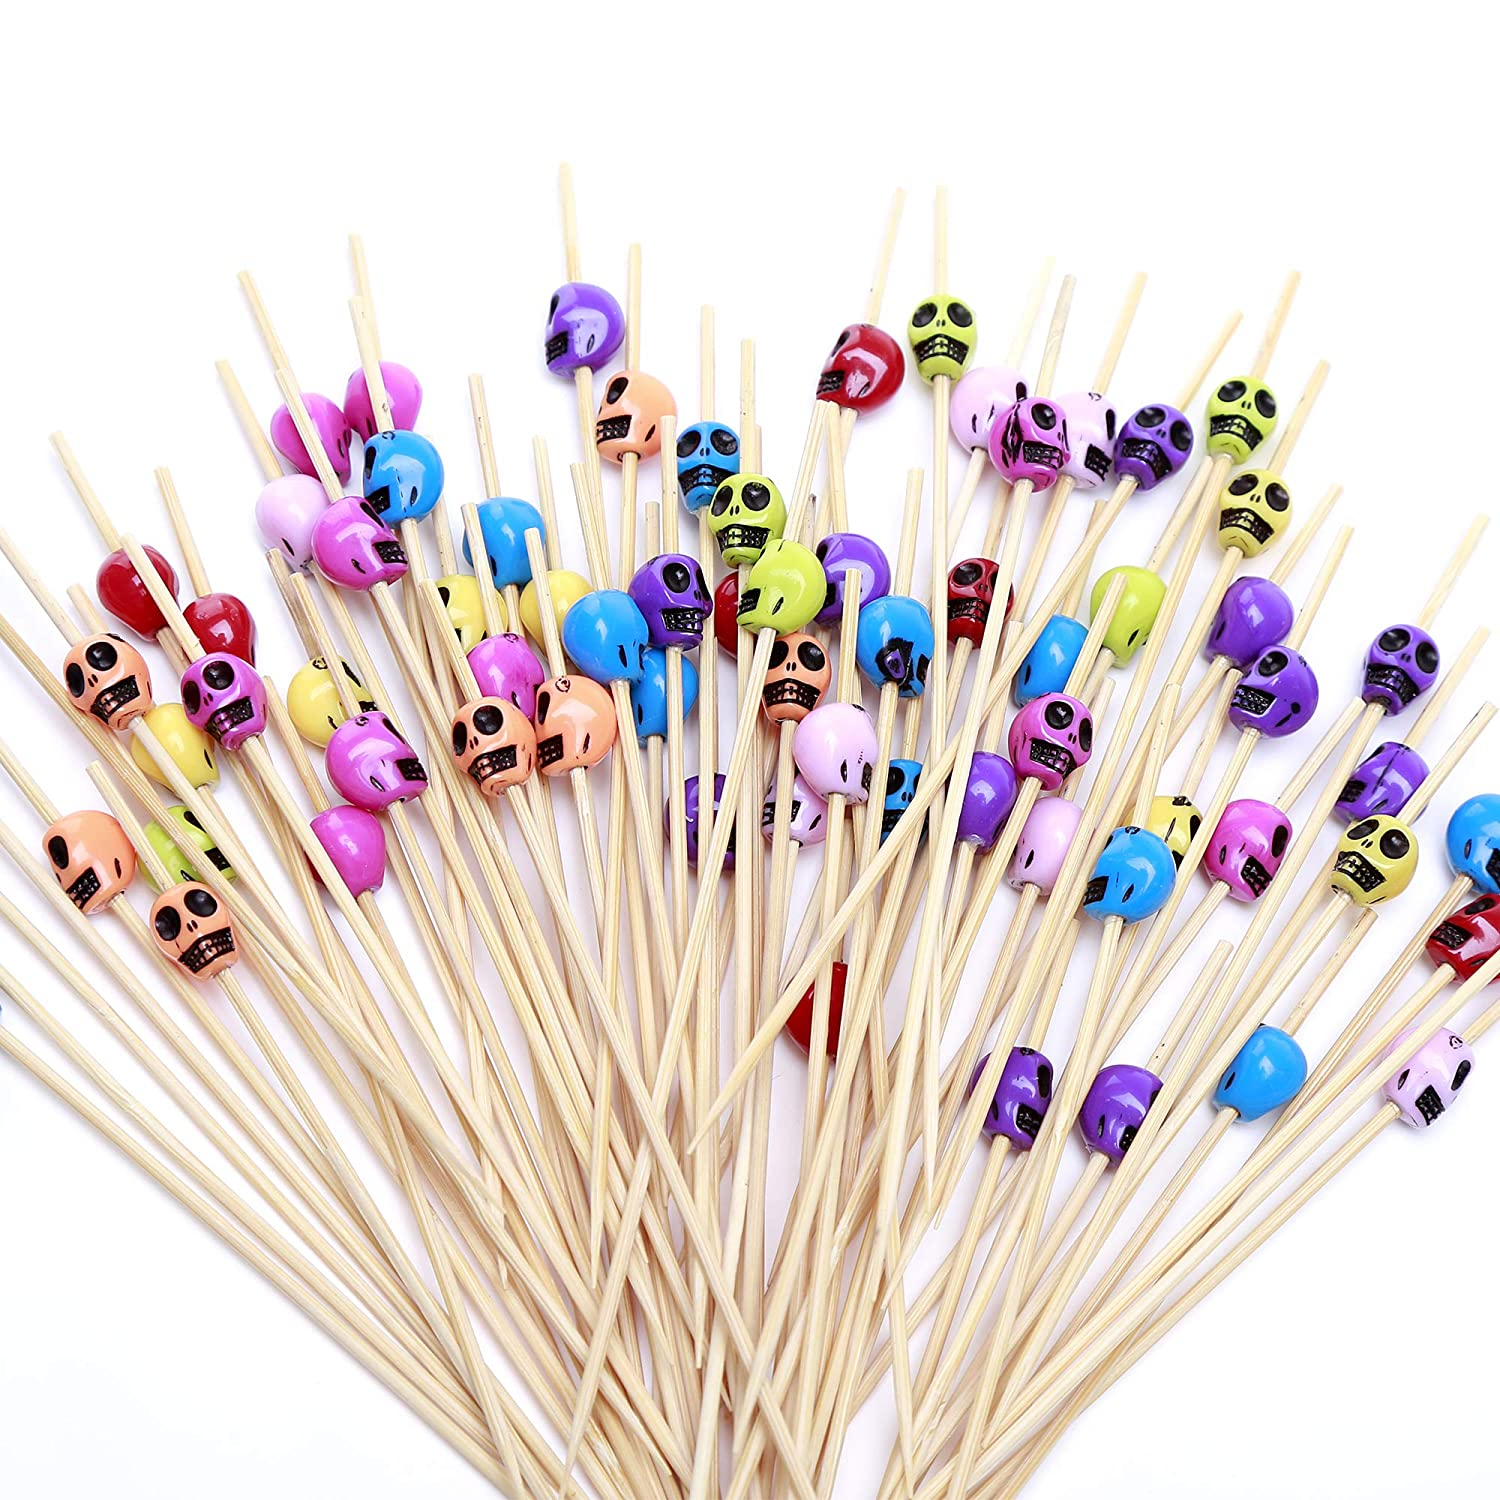 Cocktail Picks 100 Counts Skeleton Sticks Wooden Toothpicks Cocktail Sticks Halloween Party Supplies - Skeleton by HakunaMatata